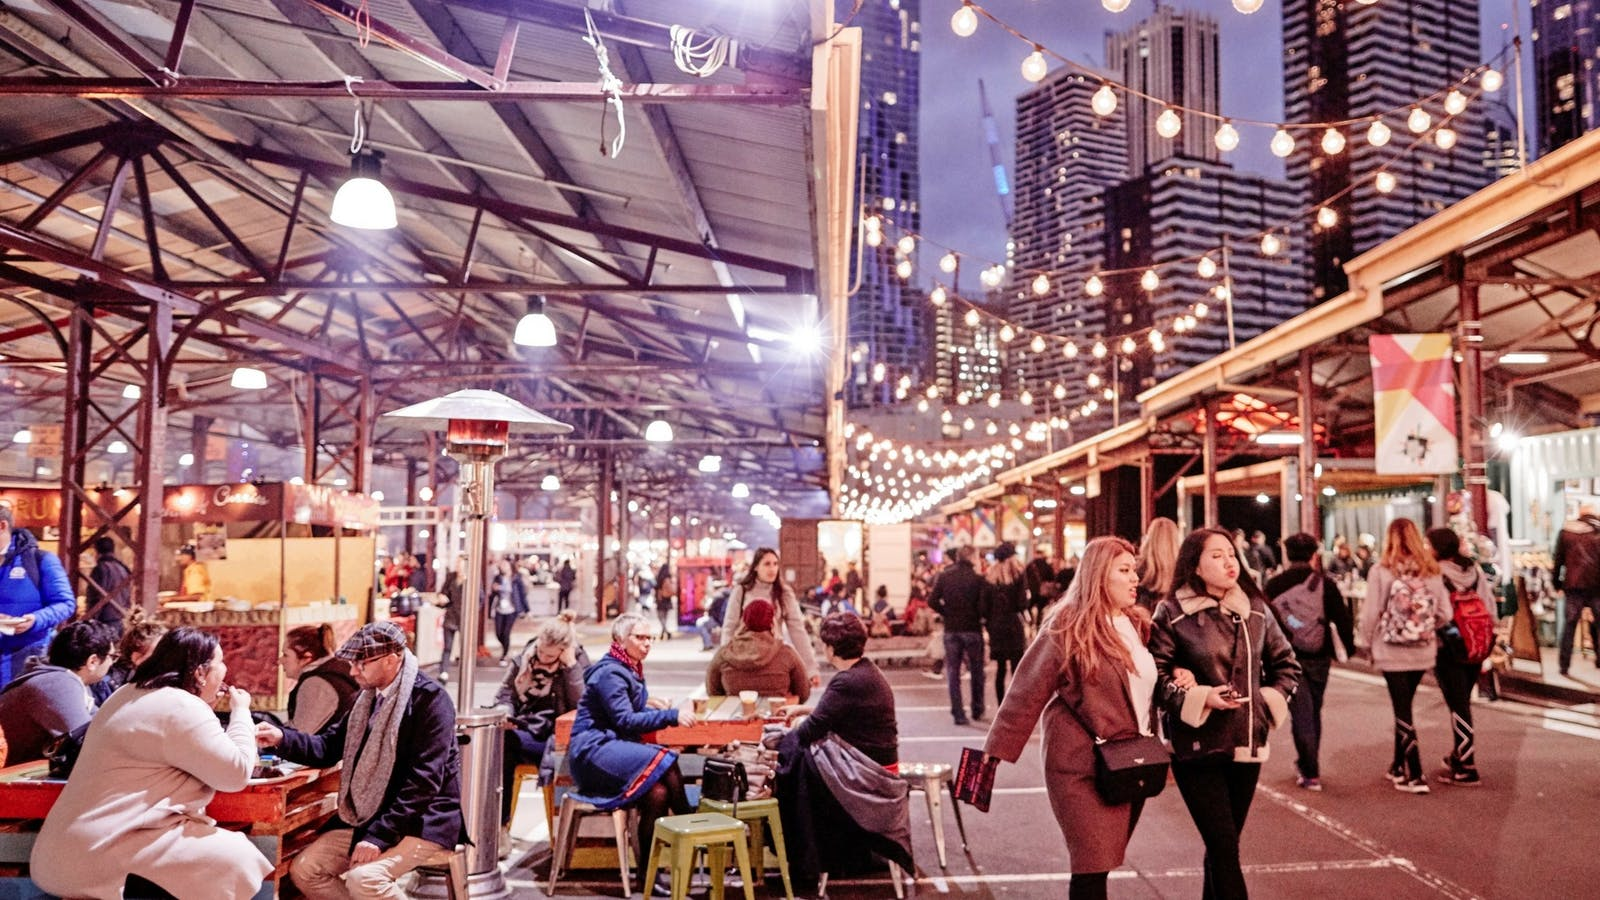 Melbourne Winter Night Market